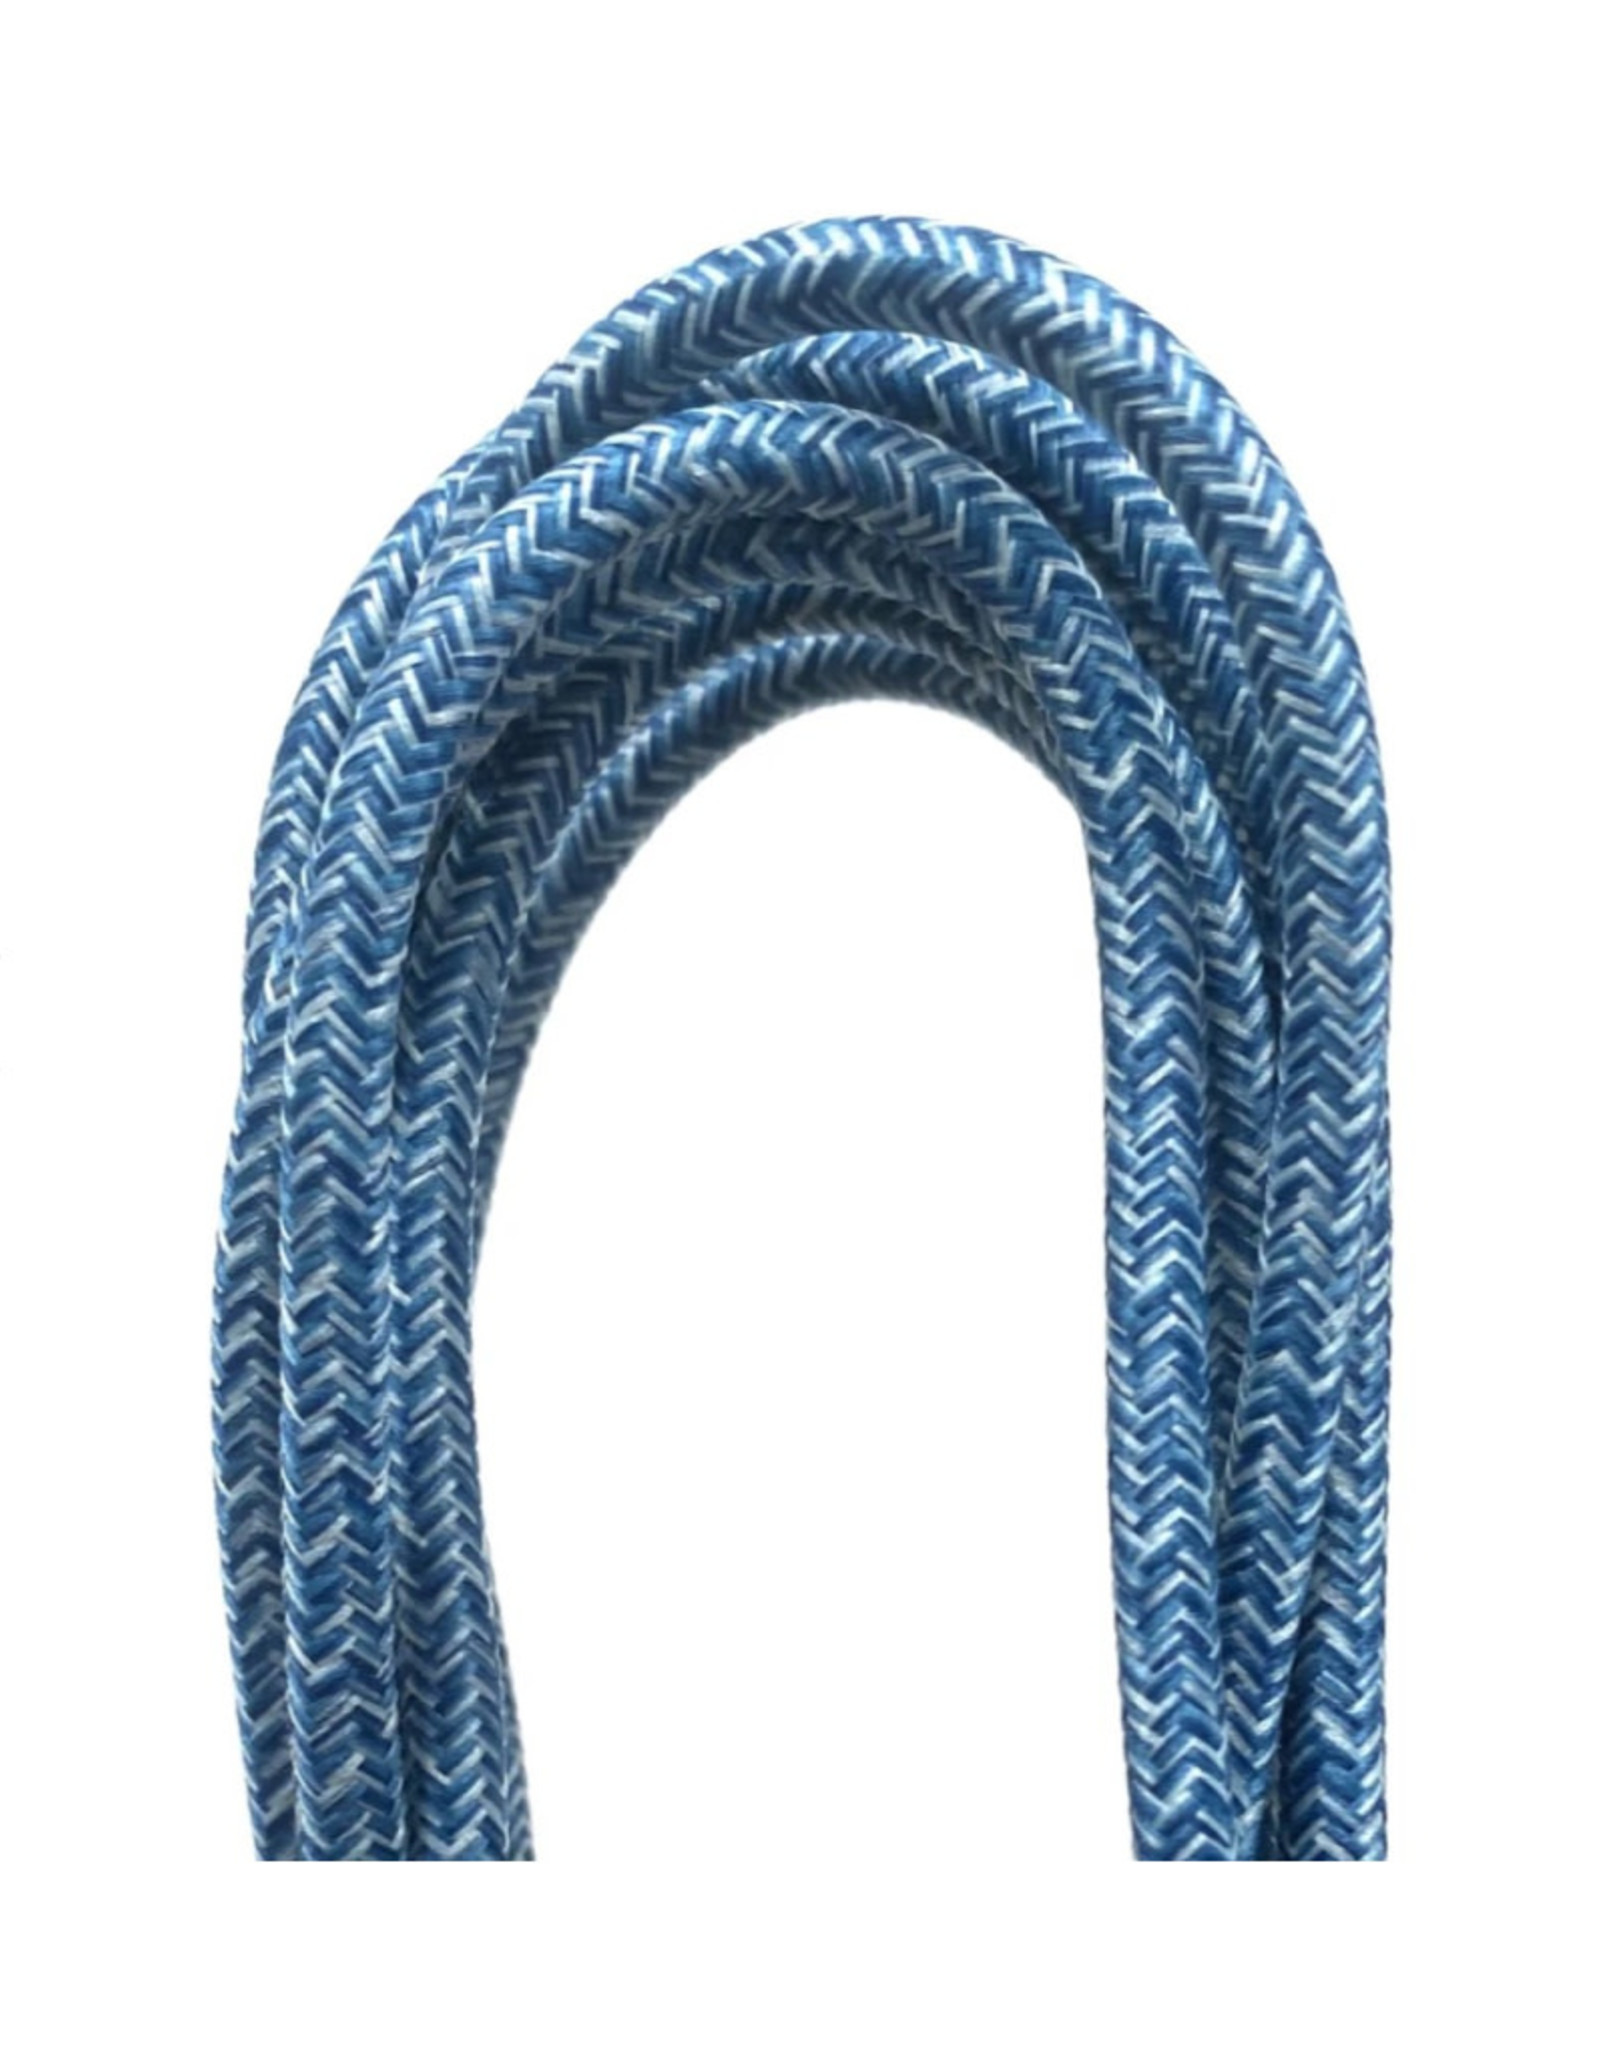 USB Cable - 6 Foot - Blue